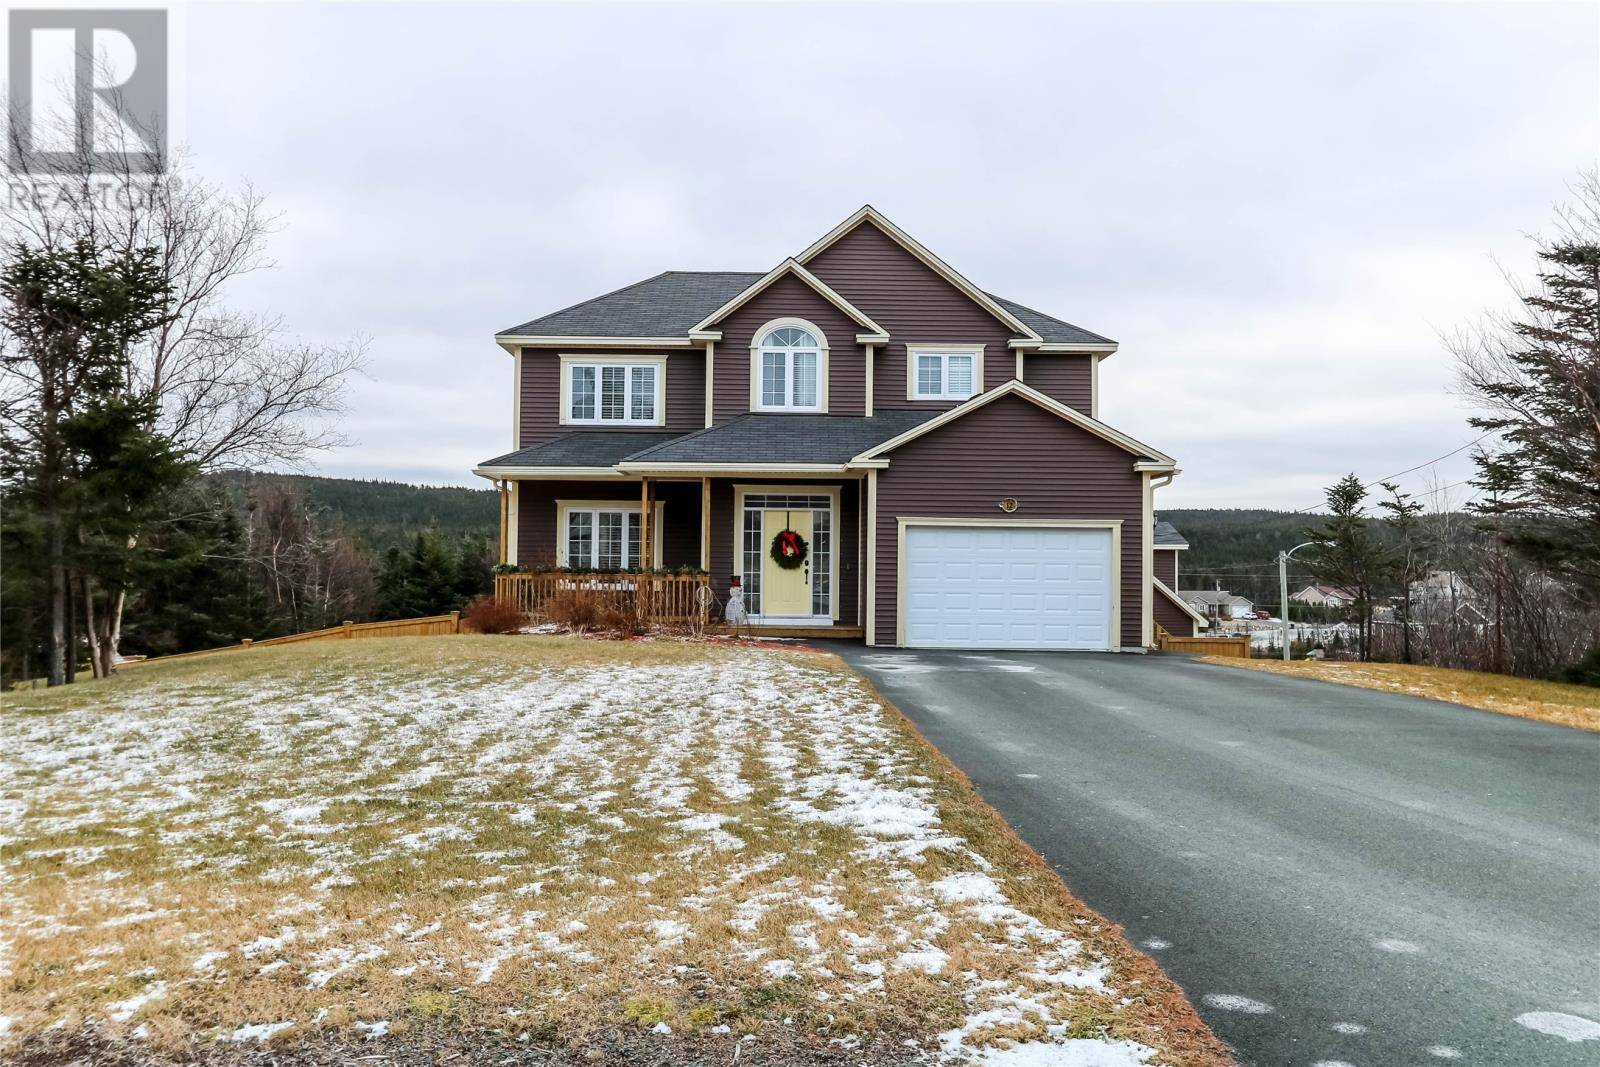 House for sale at 12 Sprucewood Ln Torbay Newfoundland - MLS: 1209657